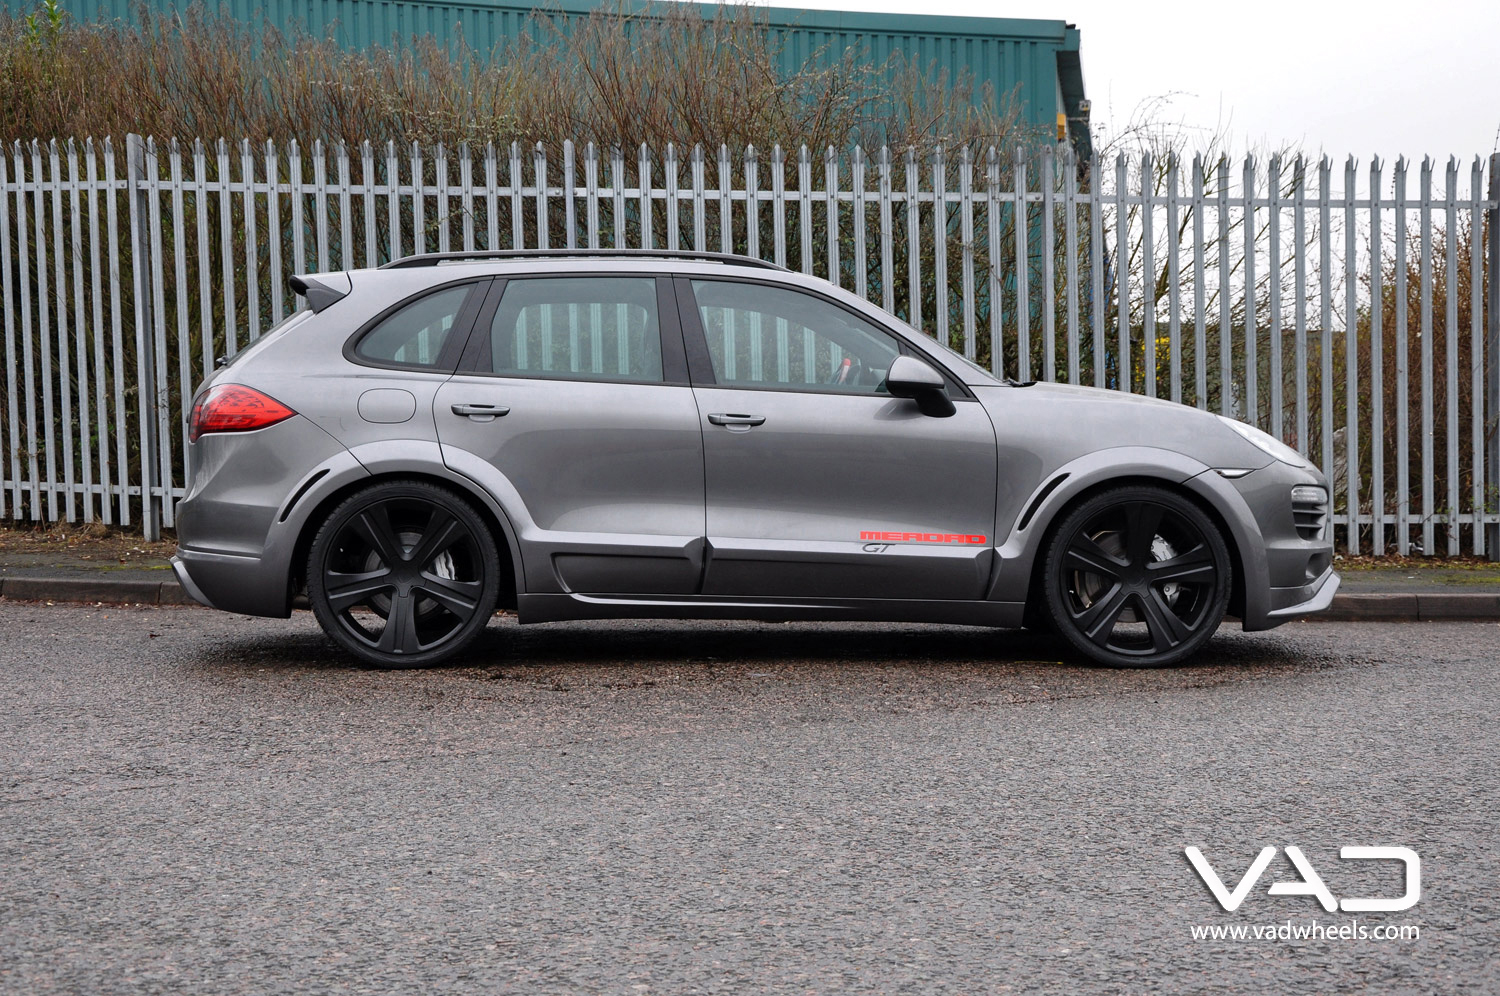 Cayenne Turbo Grey Fitted with 22'' Vogue Evo